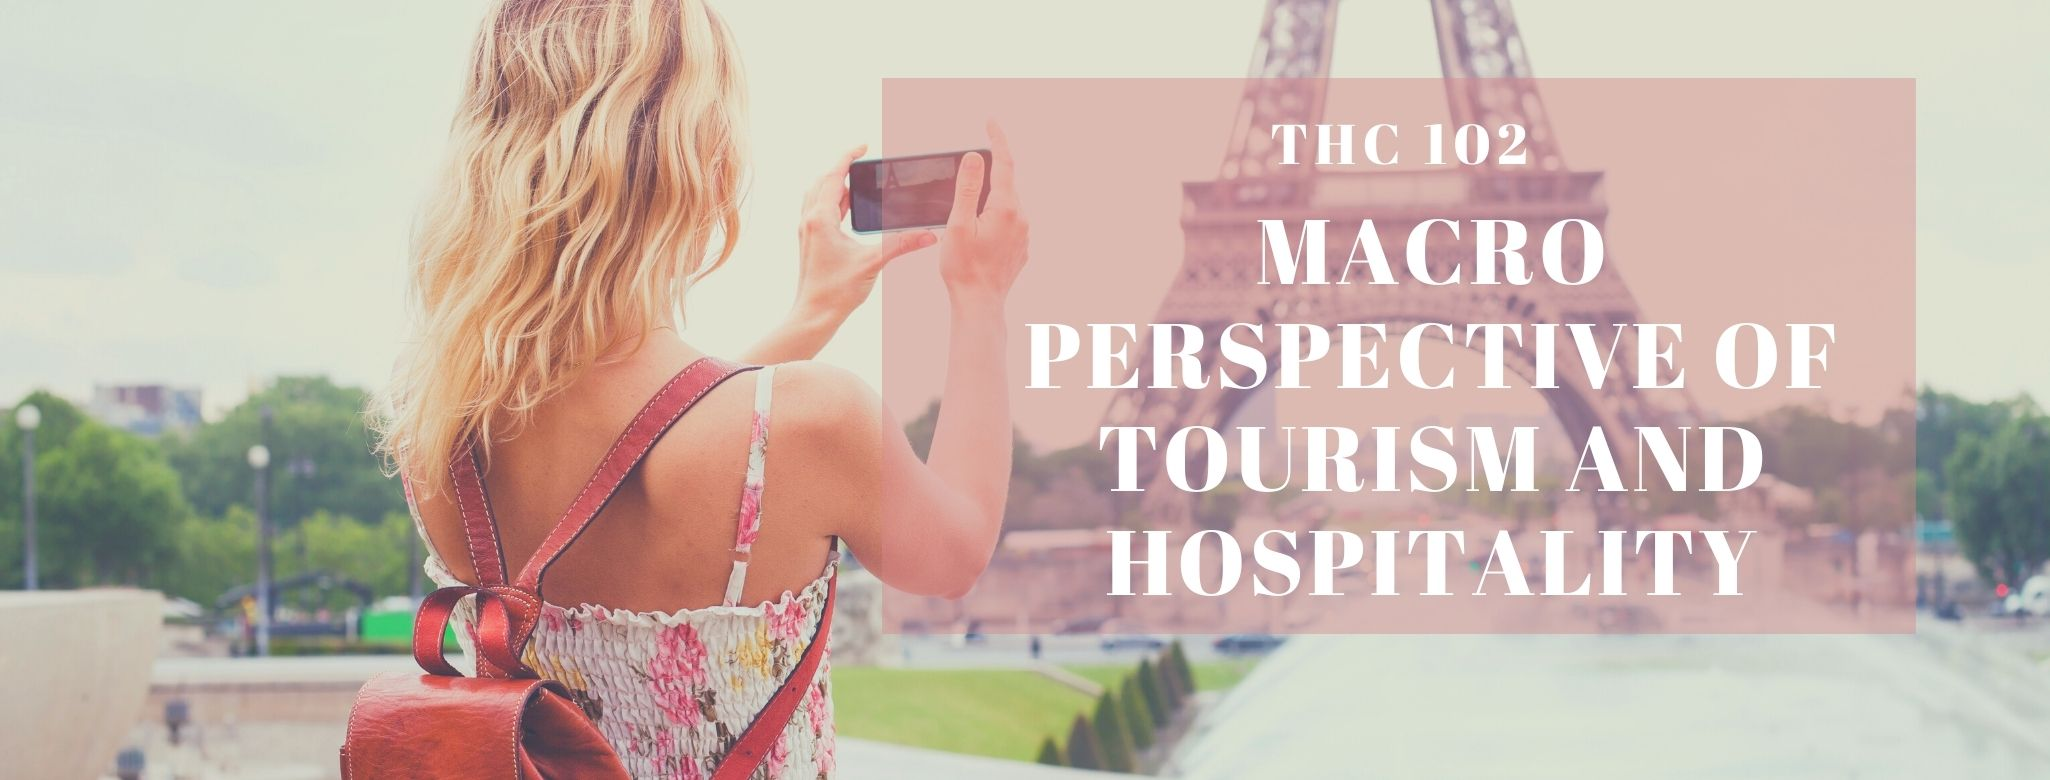 MACRO PERSPECTIVE OF TOURISM AND HOSPITALITY